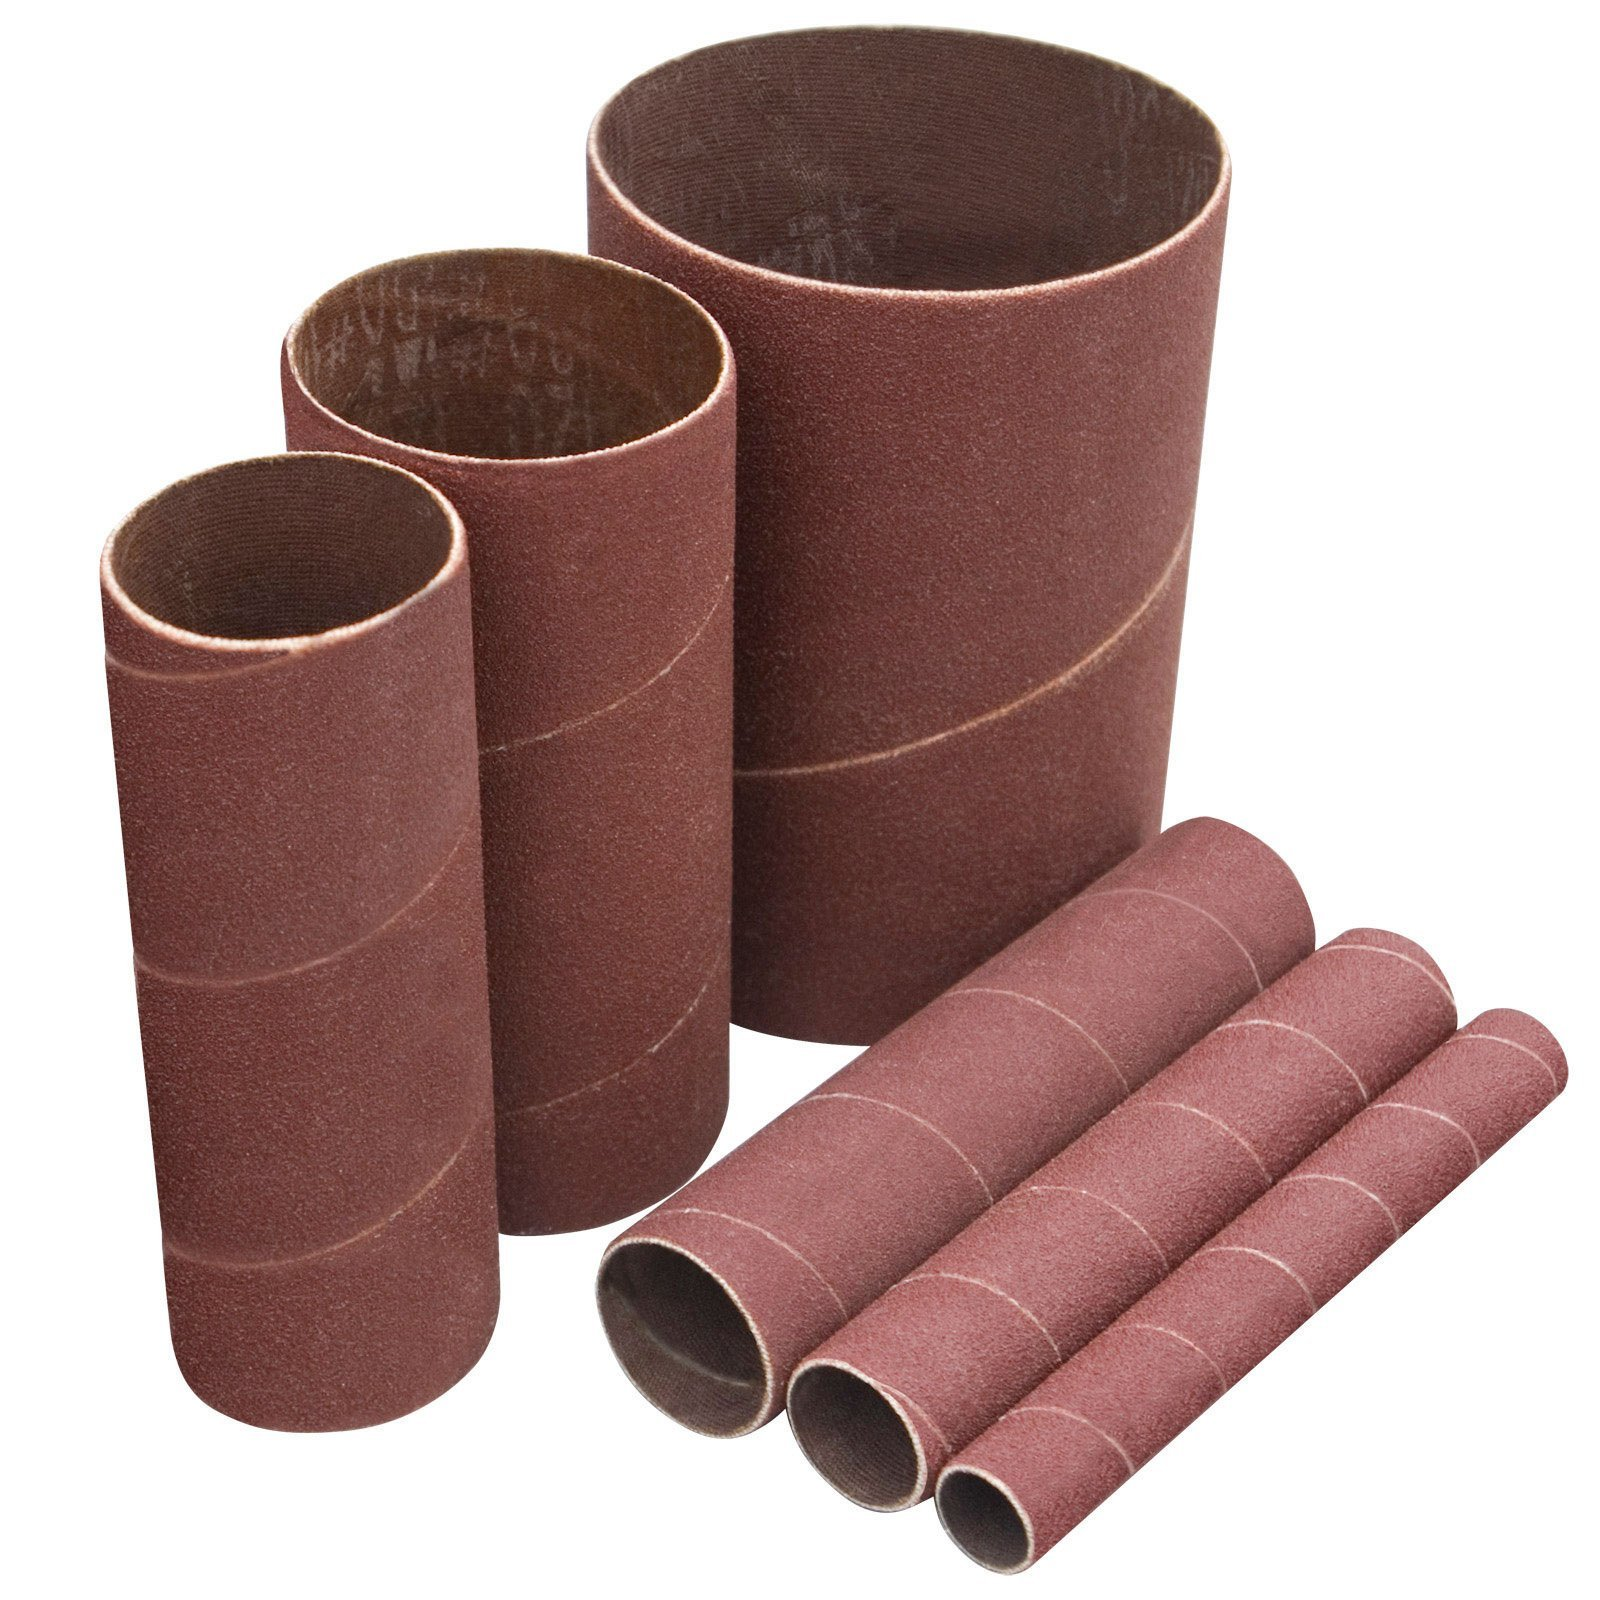 """POWERTEC 11200X Sanding Sleeves, 4-1/2-Inch, 120 Grit, 1/2"""", 3/4"""", 1"""", 1-1/2"""", 2"""" and 3"""", 6PK"""